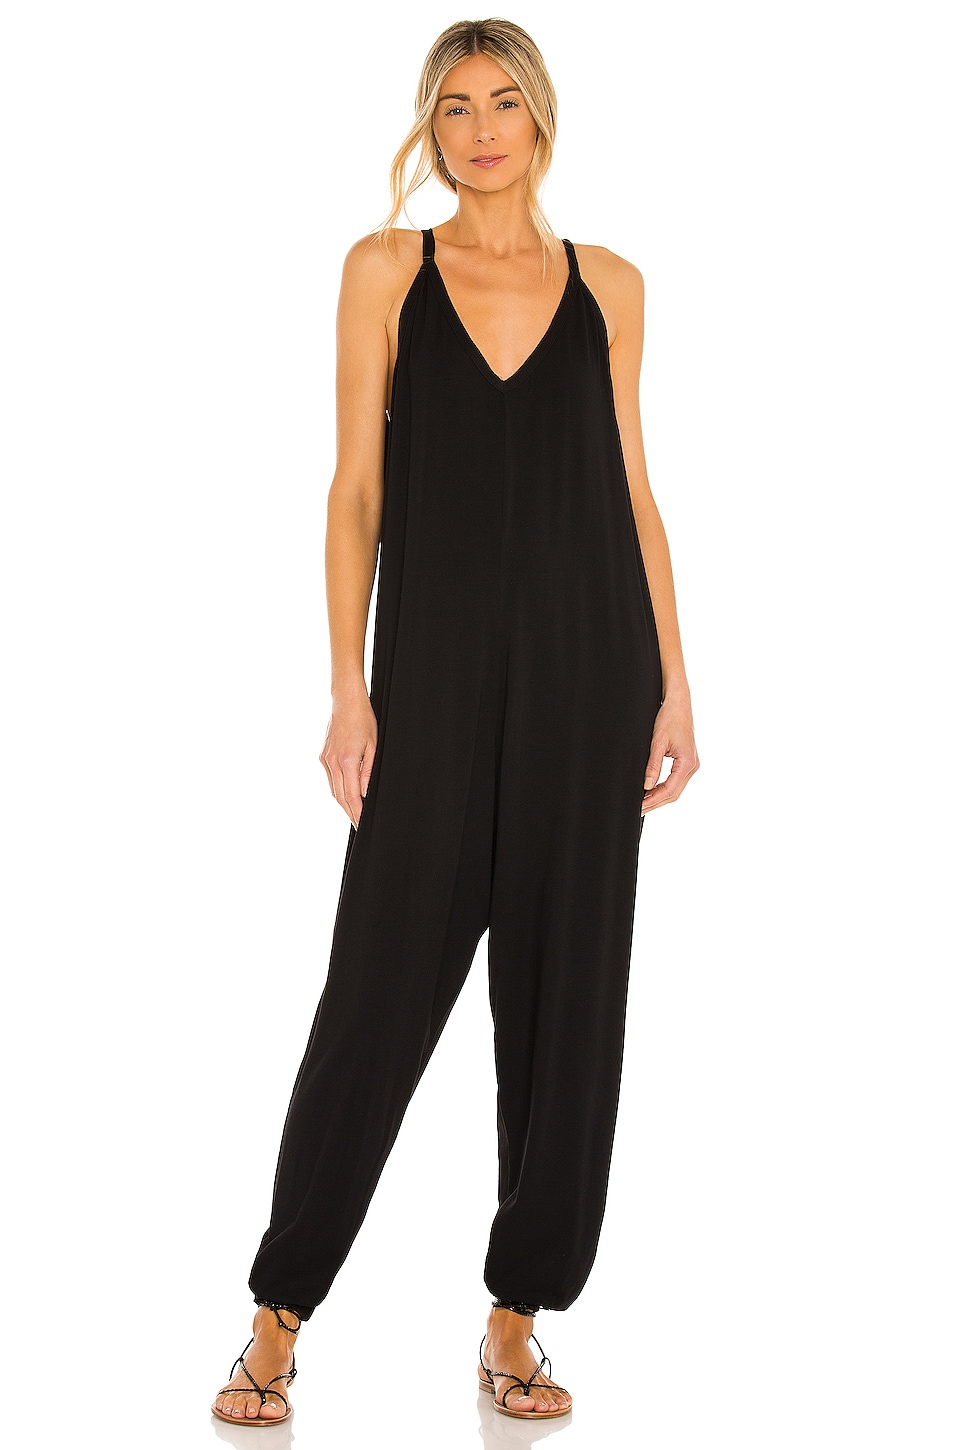 Draped Jumpsuit             Bobi                                                                                                       CA$ 143.60 6